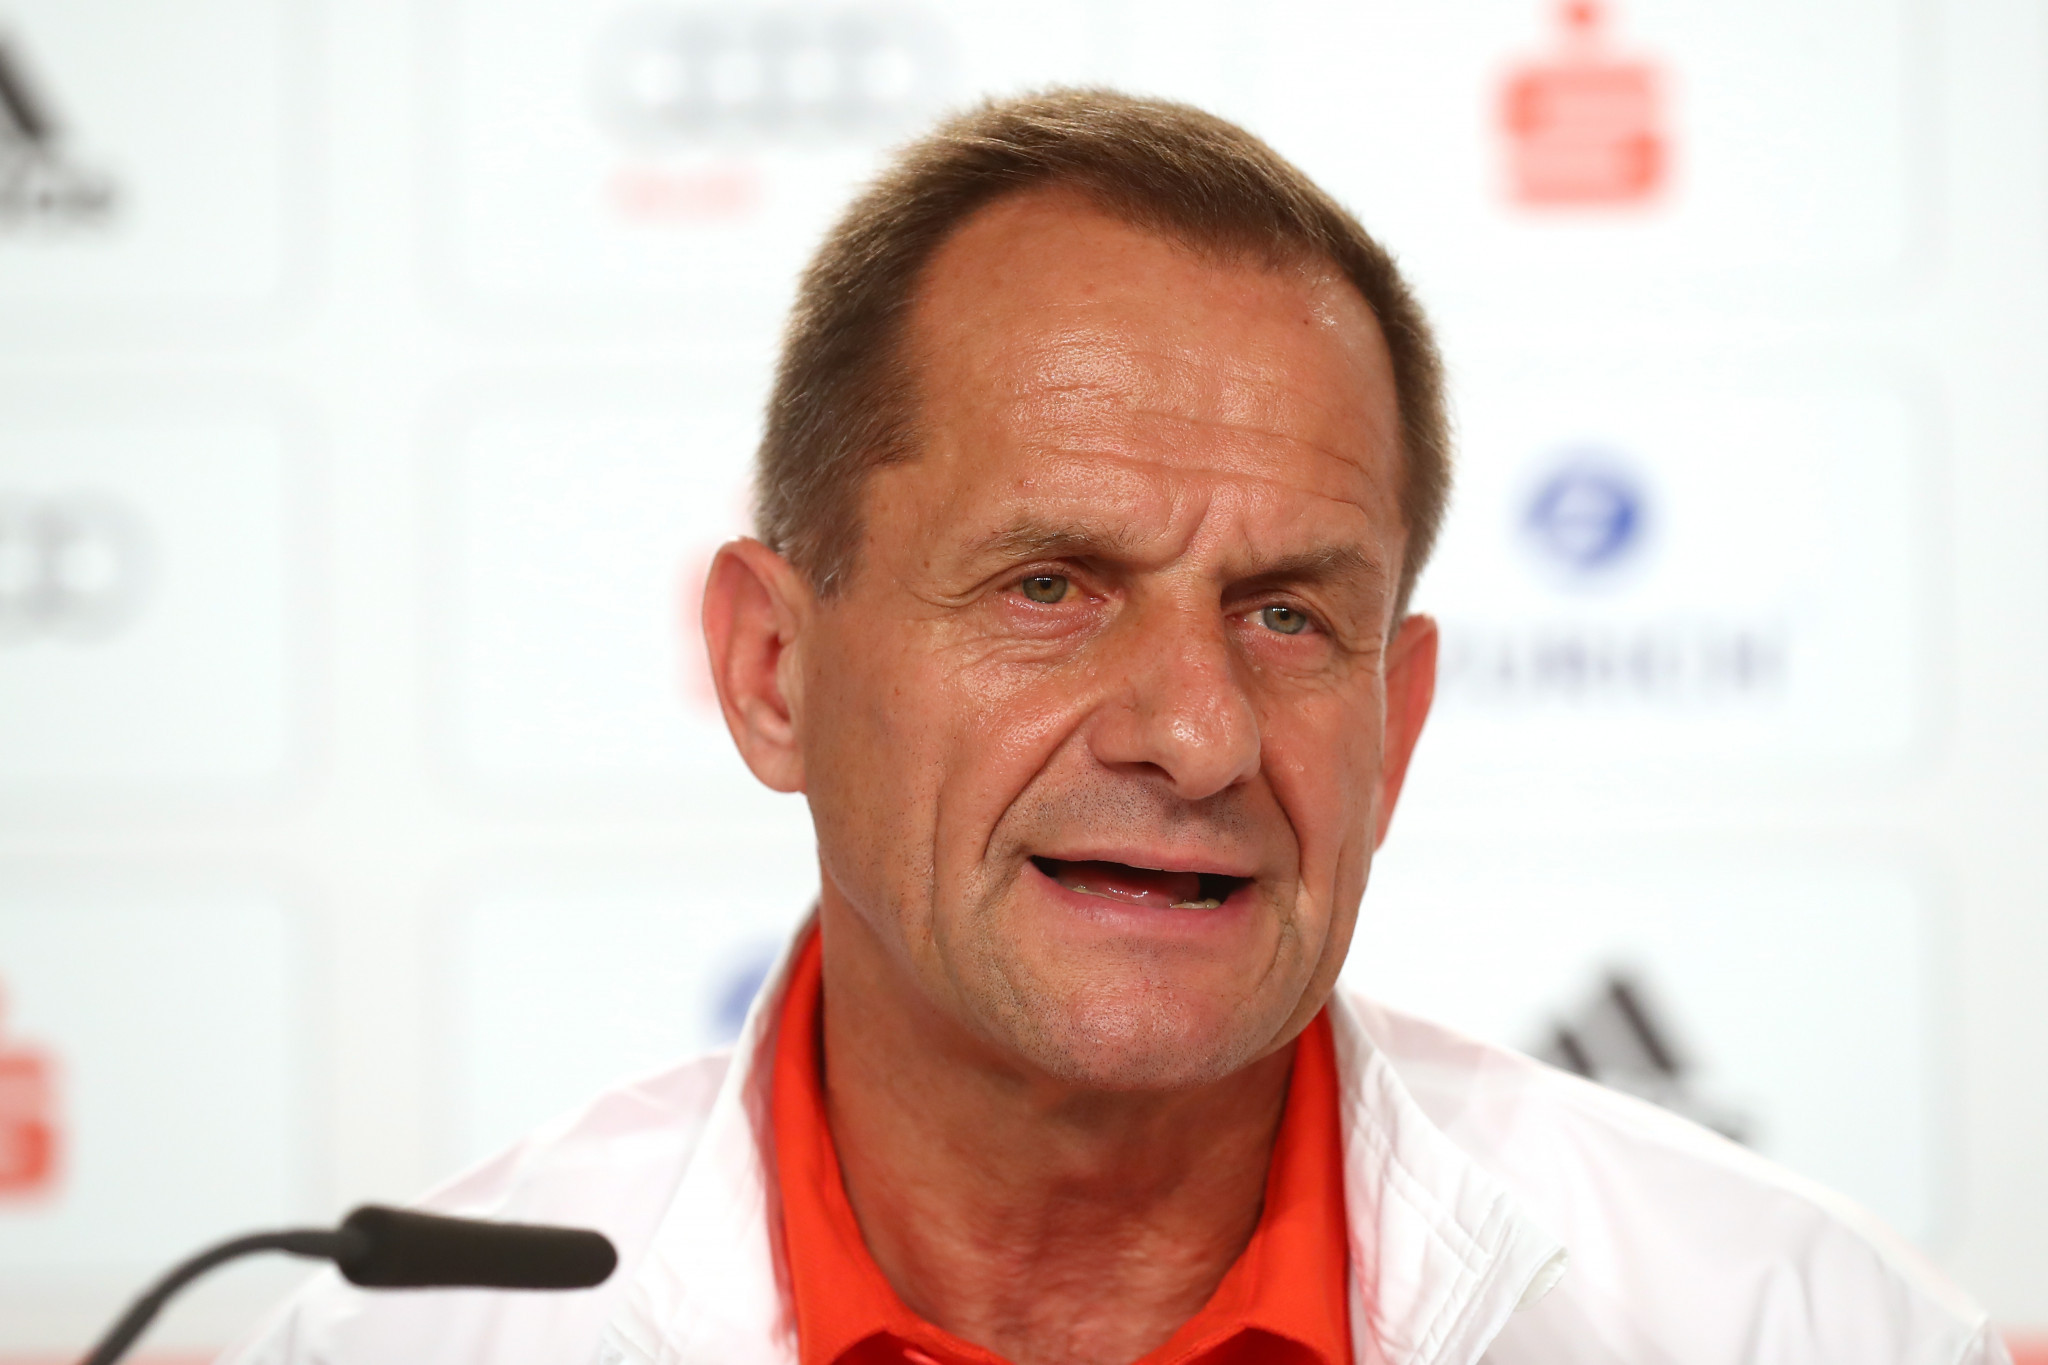 DOSB President Hörmann suggests Tokyo 2020 could take place without international spectators